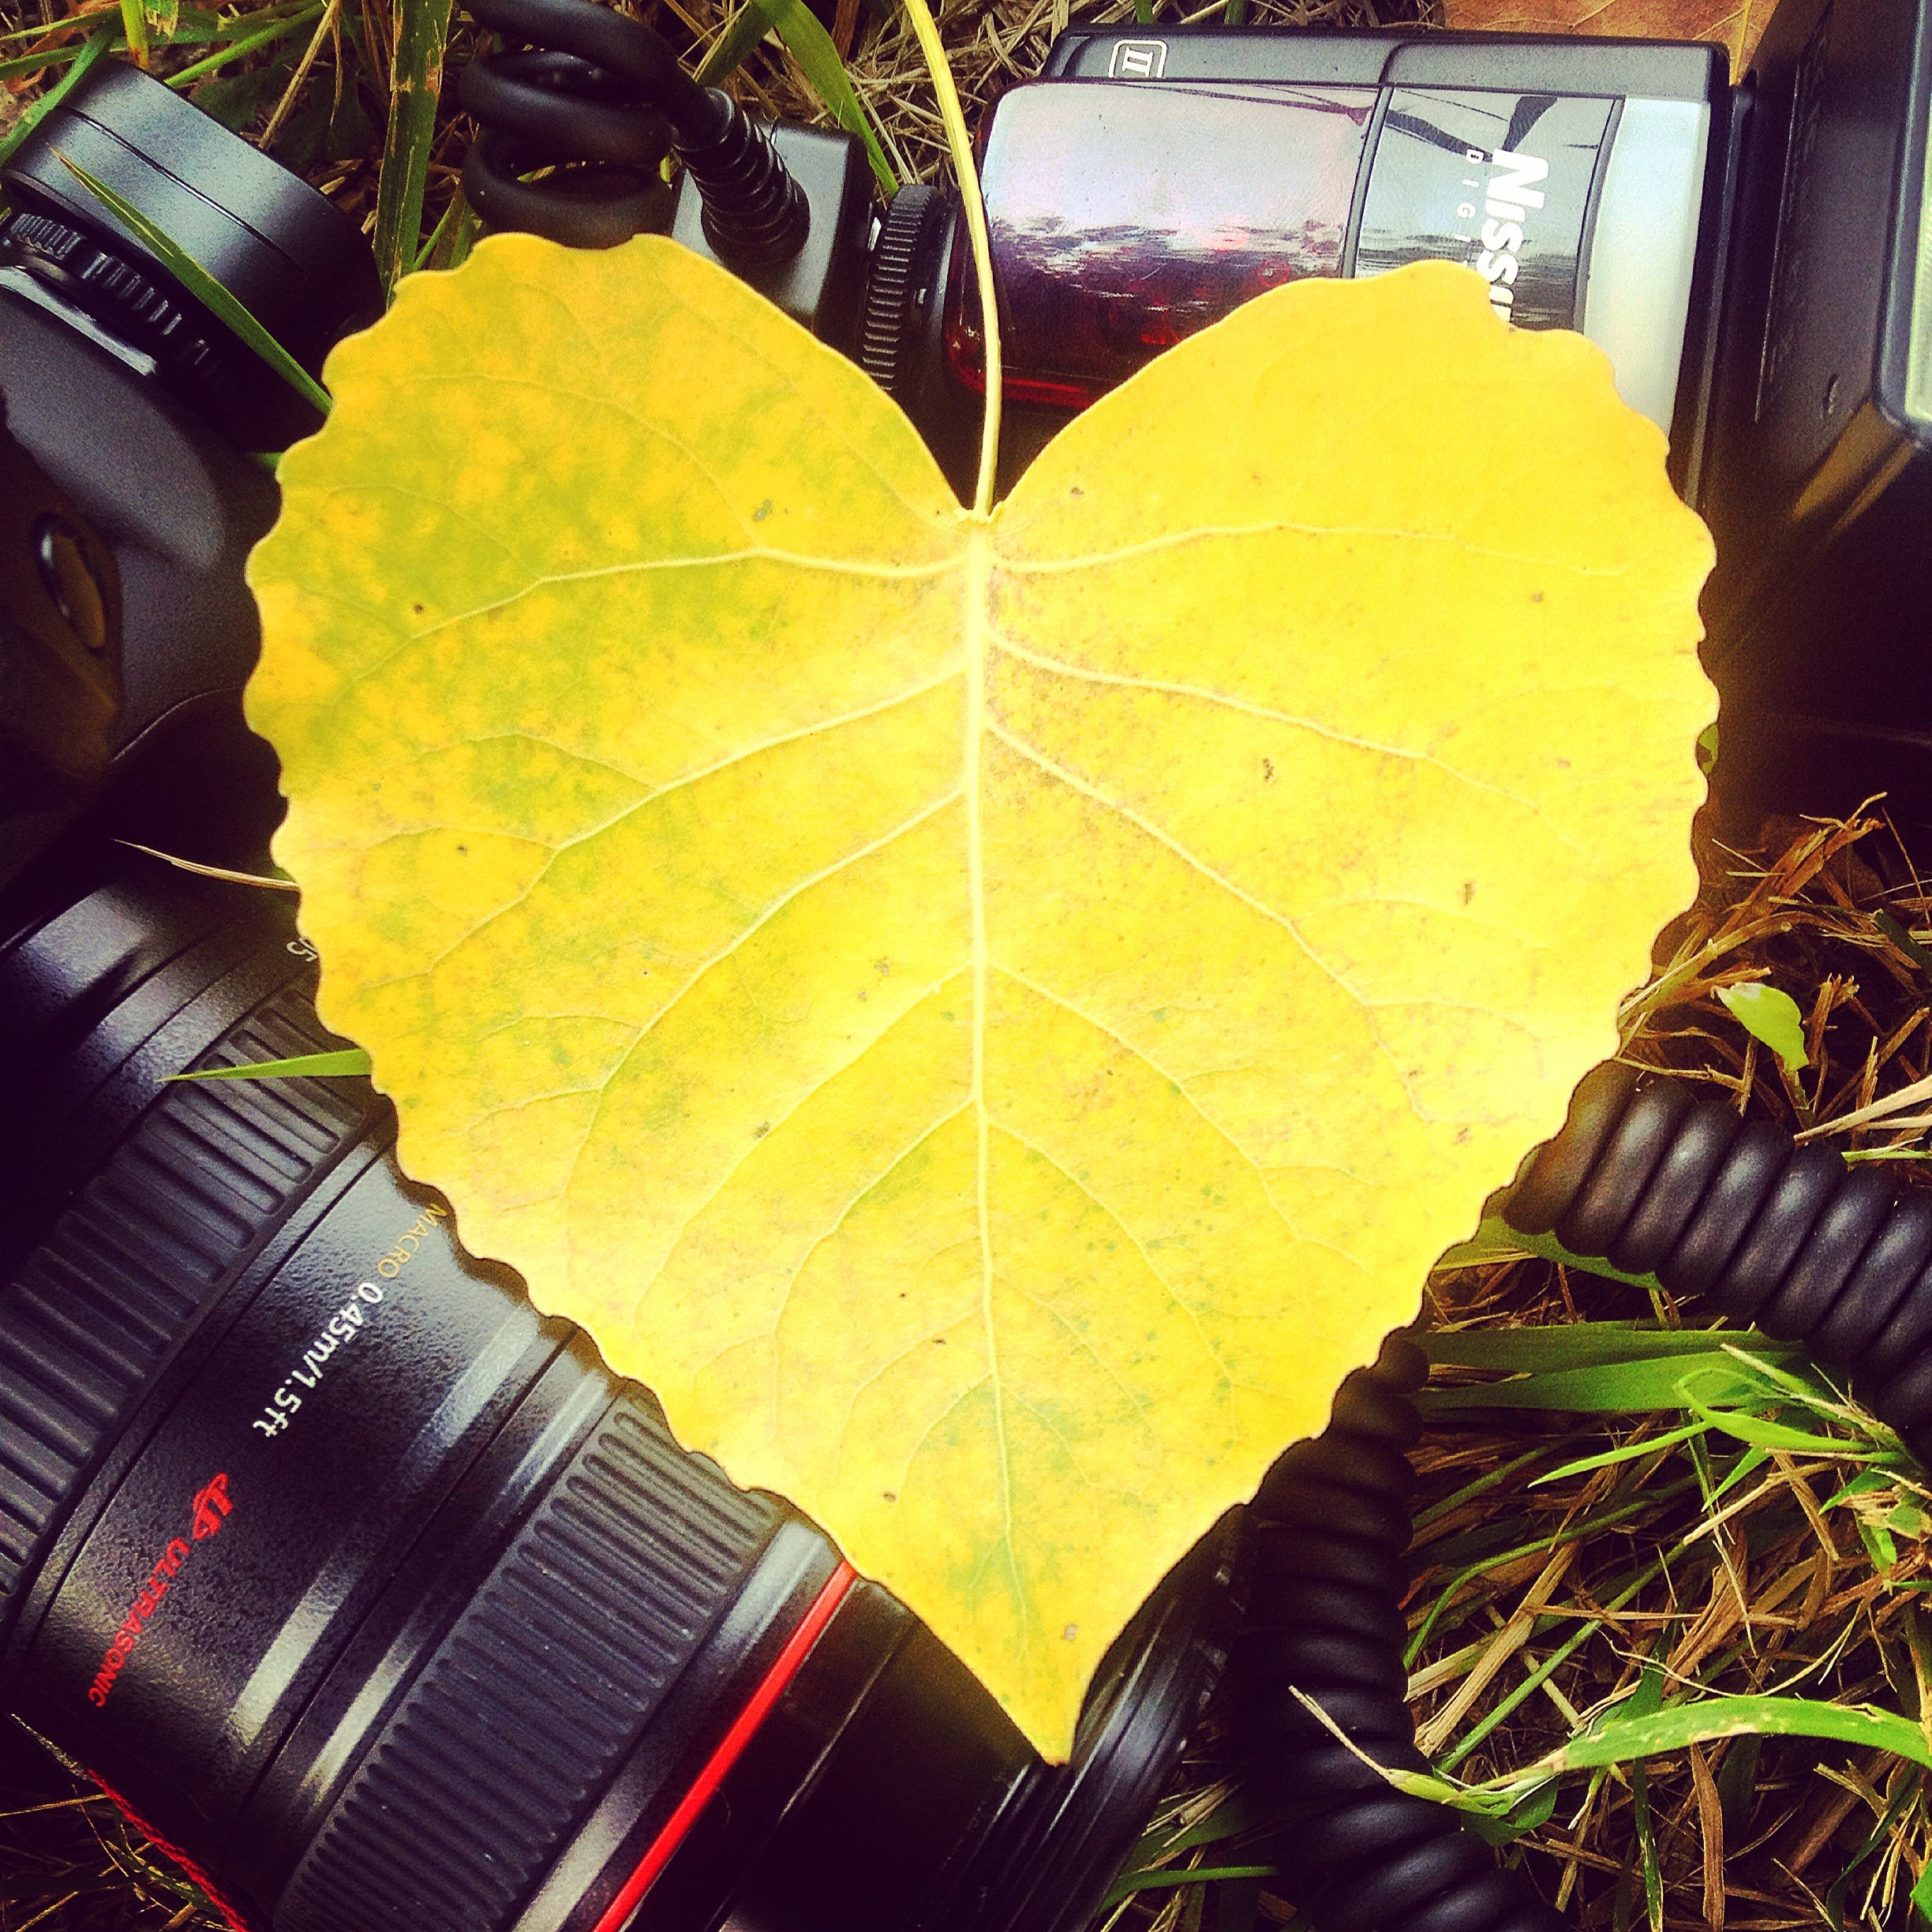 canon, flash, foliage